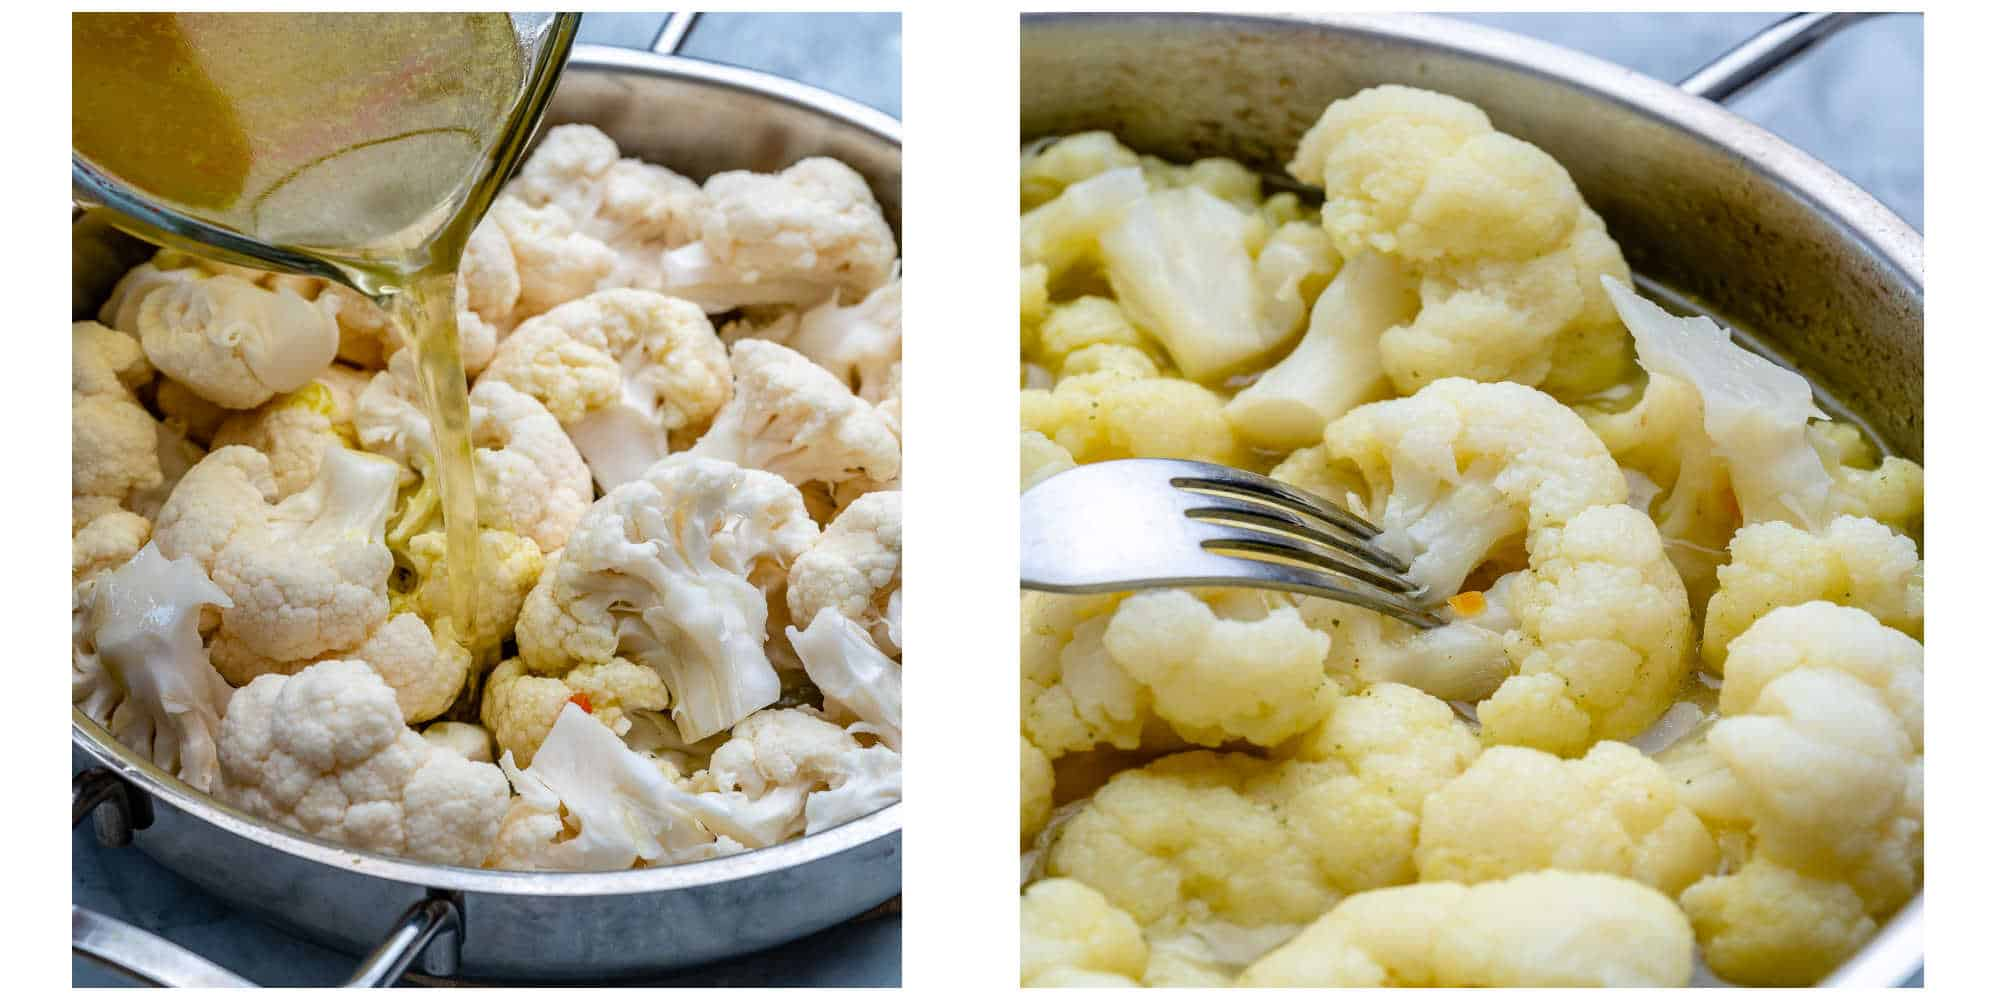 collage of broth being poured on cauliflower on left and cooked cauliflower on right